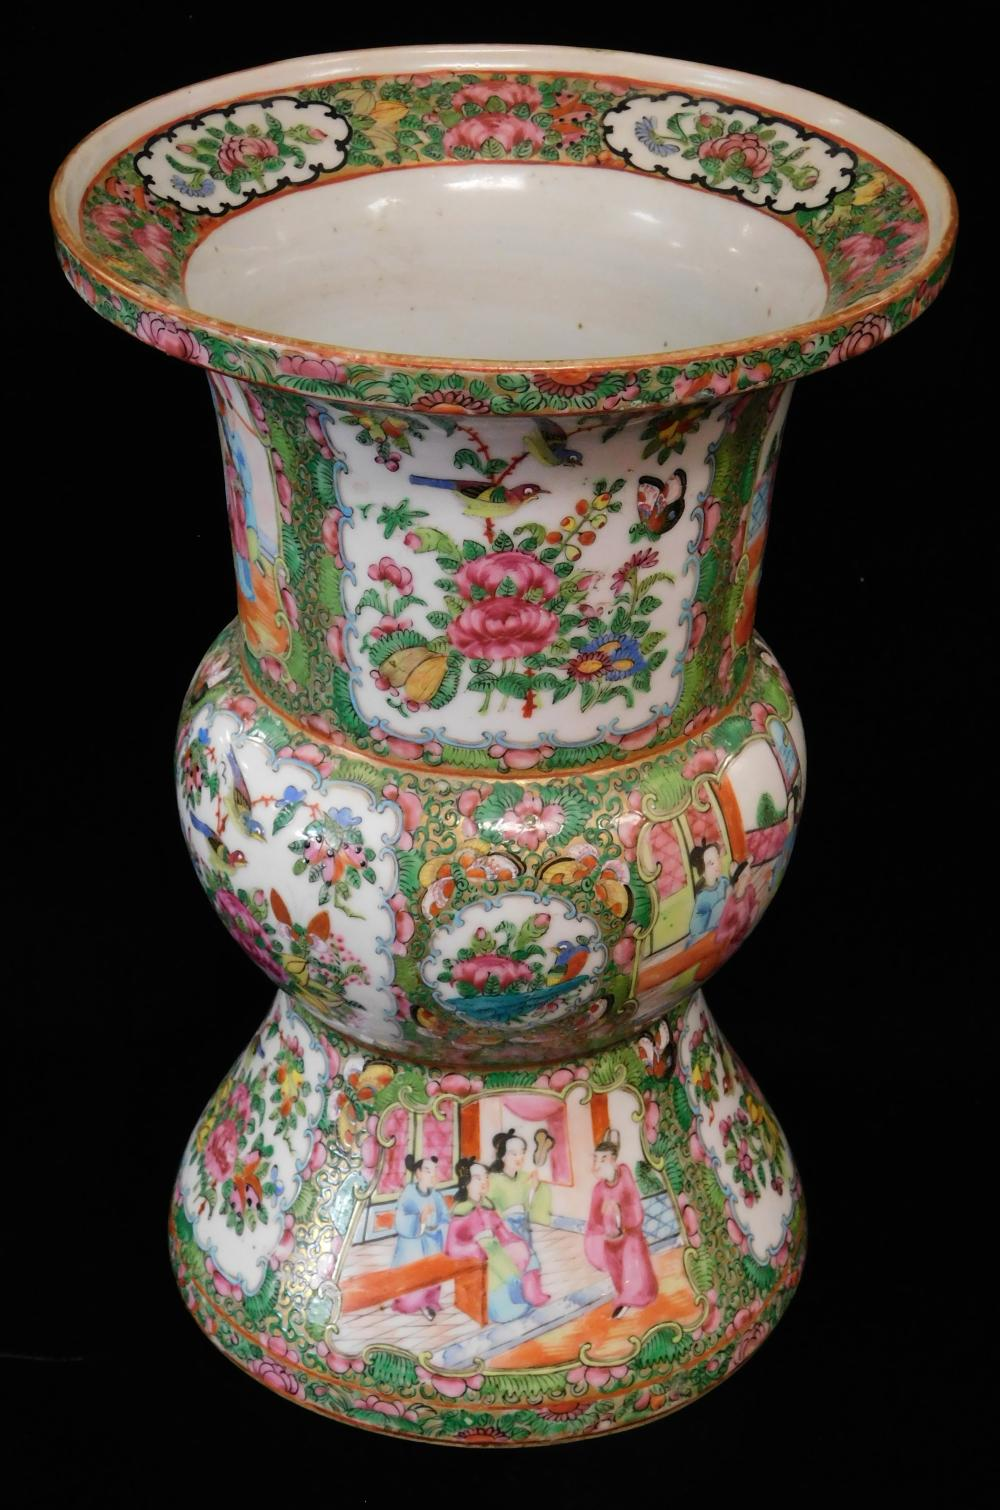 """ASIAN: Chinese Export porcelain vase, 19th C., Rose Medallion pattern, Ku-form, wear consistent with age and use, 13"""" h."""